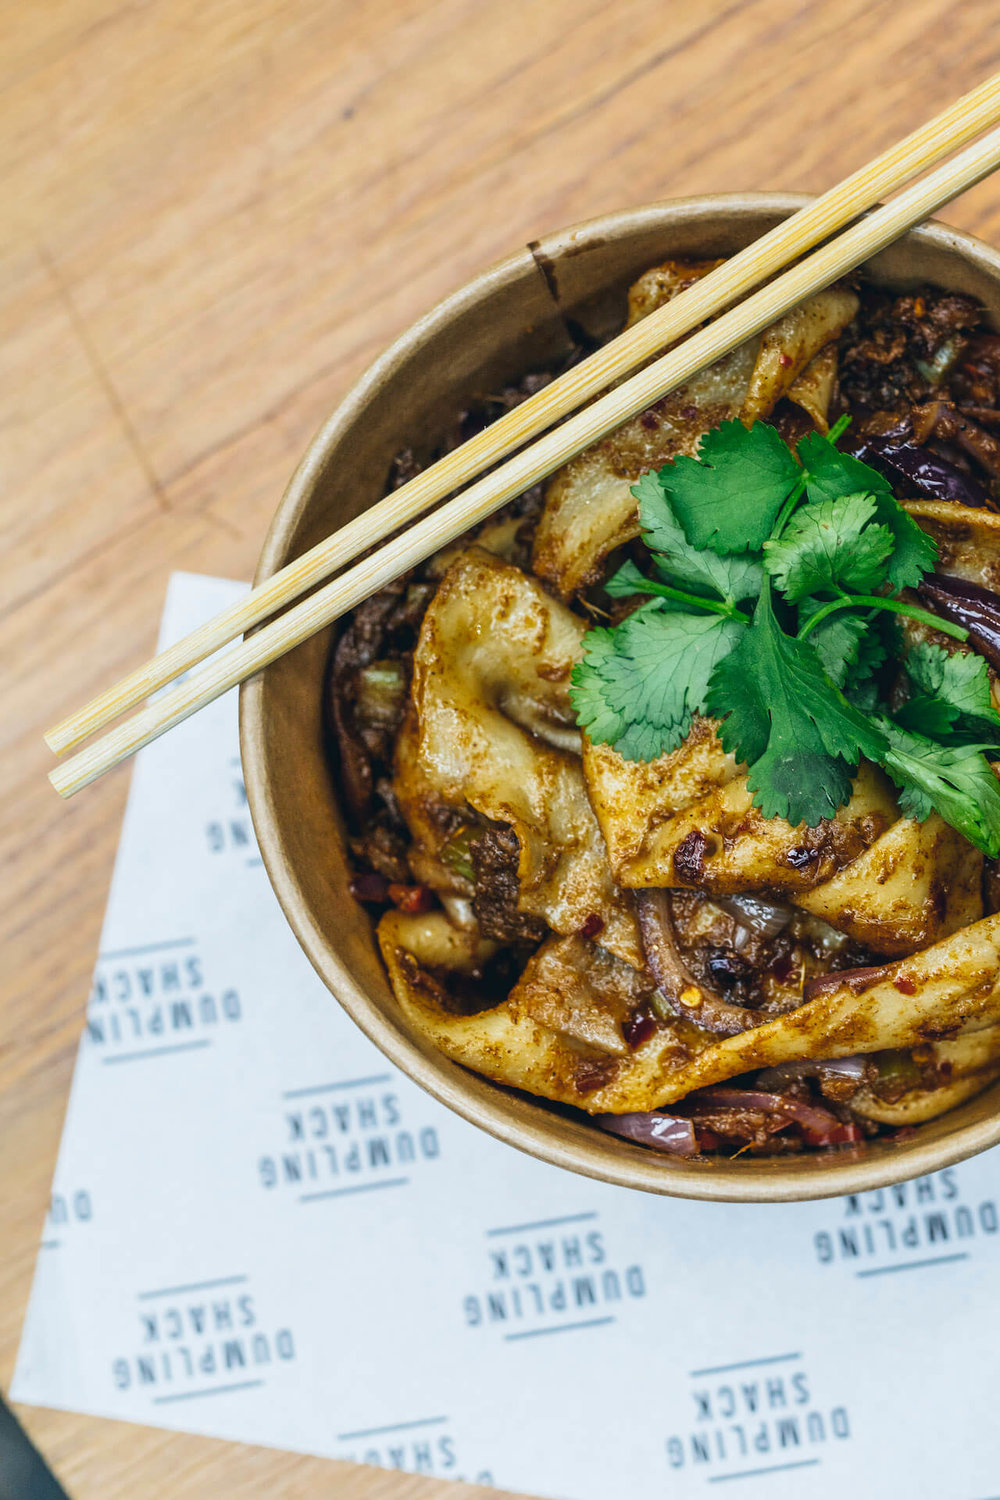 cumin-lamb-hand-pulled-noodles-dumpling-shack-london.jpg